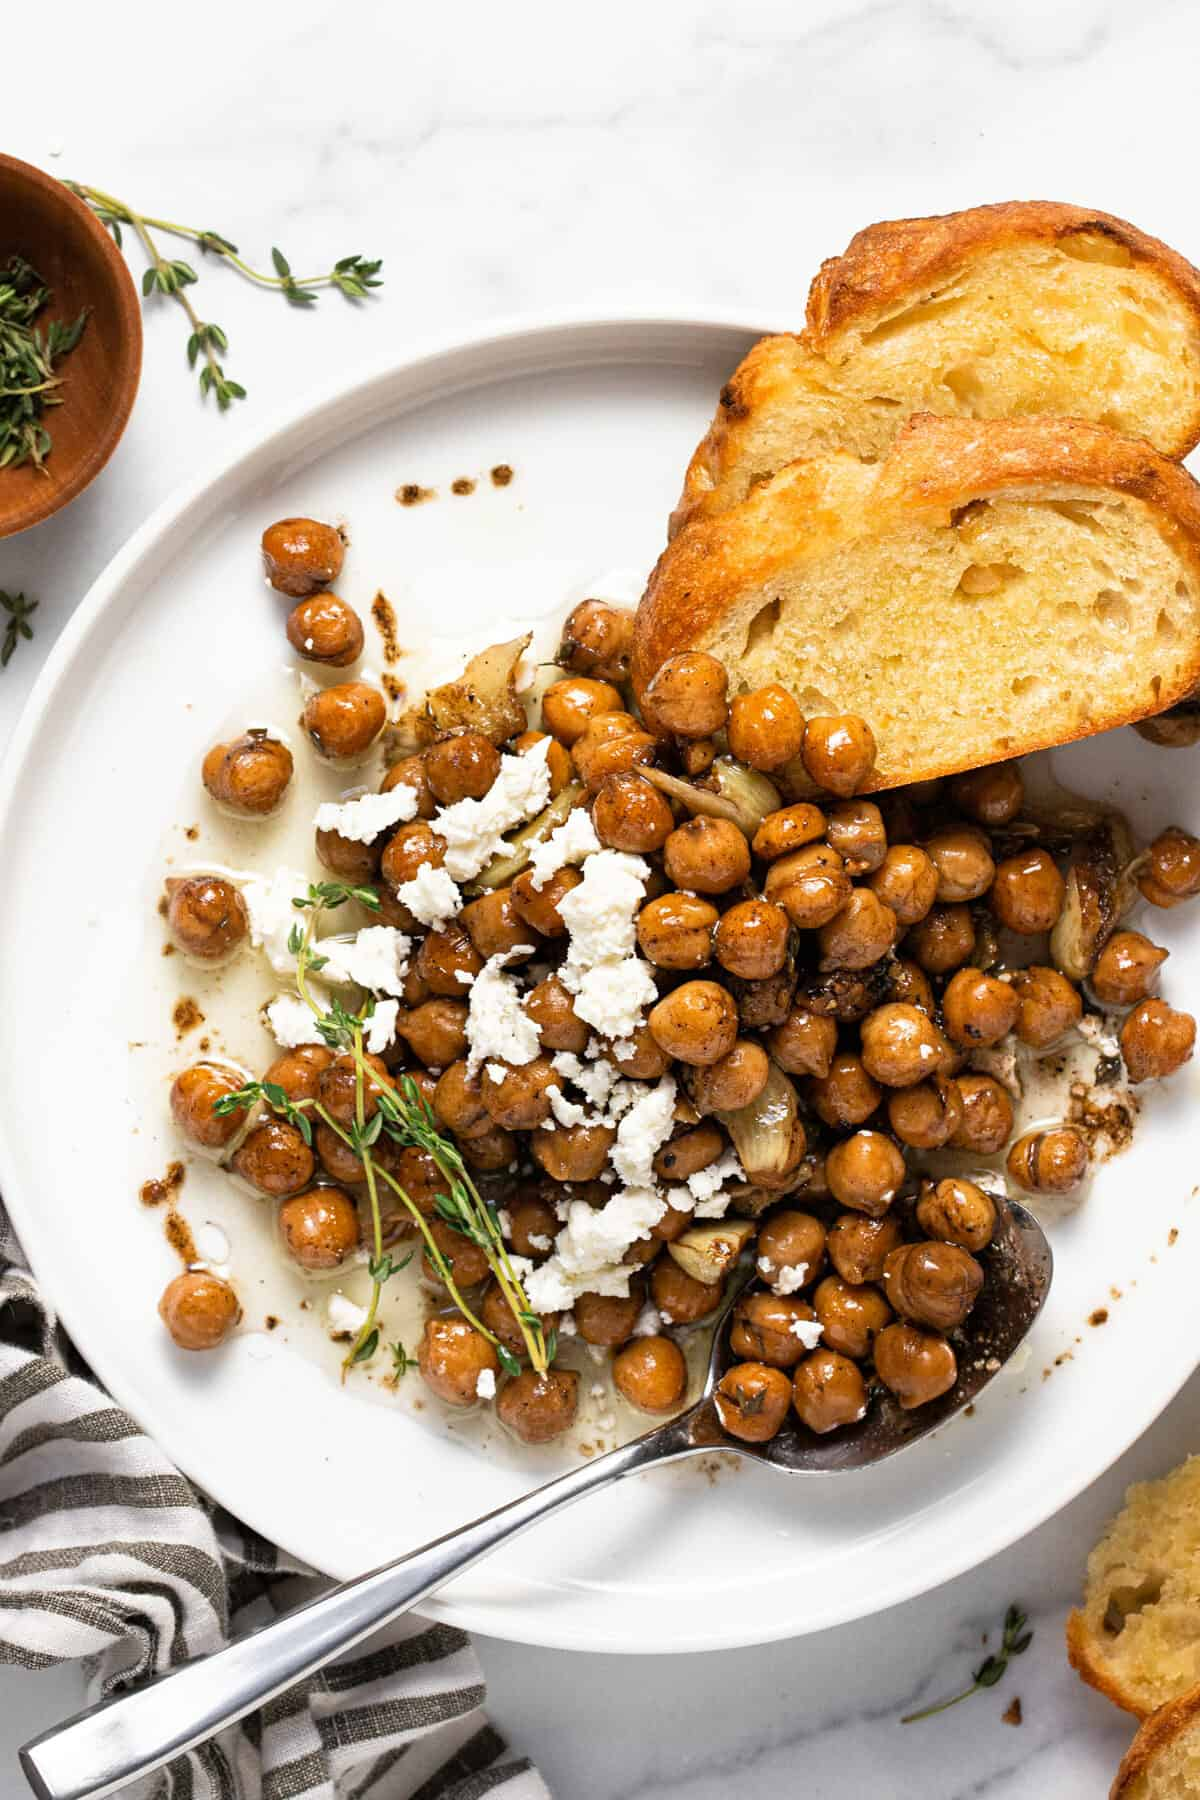 White plate filled with braised chickpeas and a couple slices of crusty bread